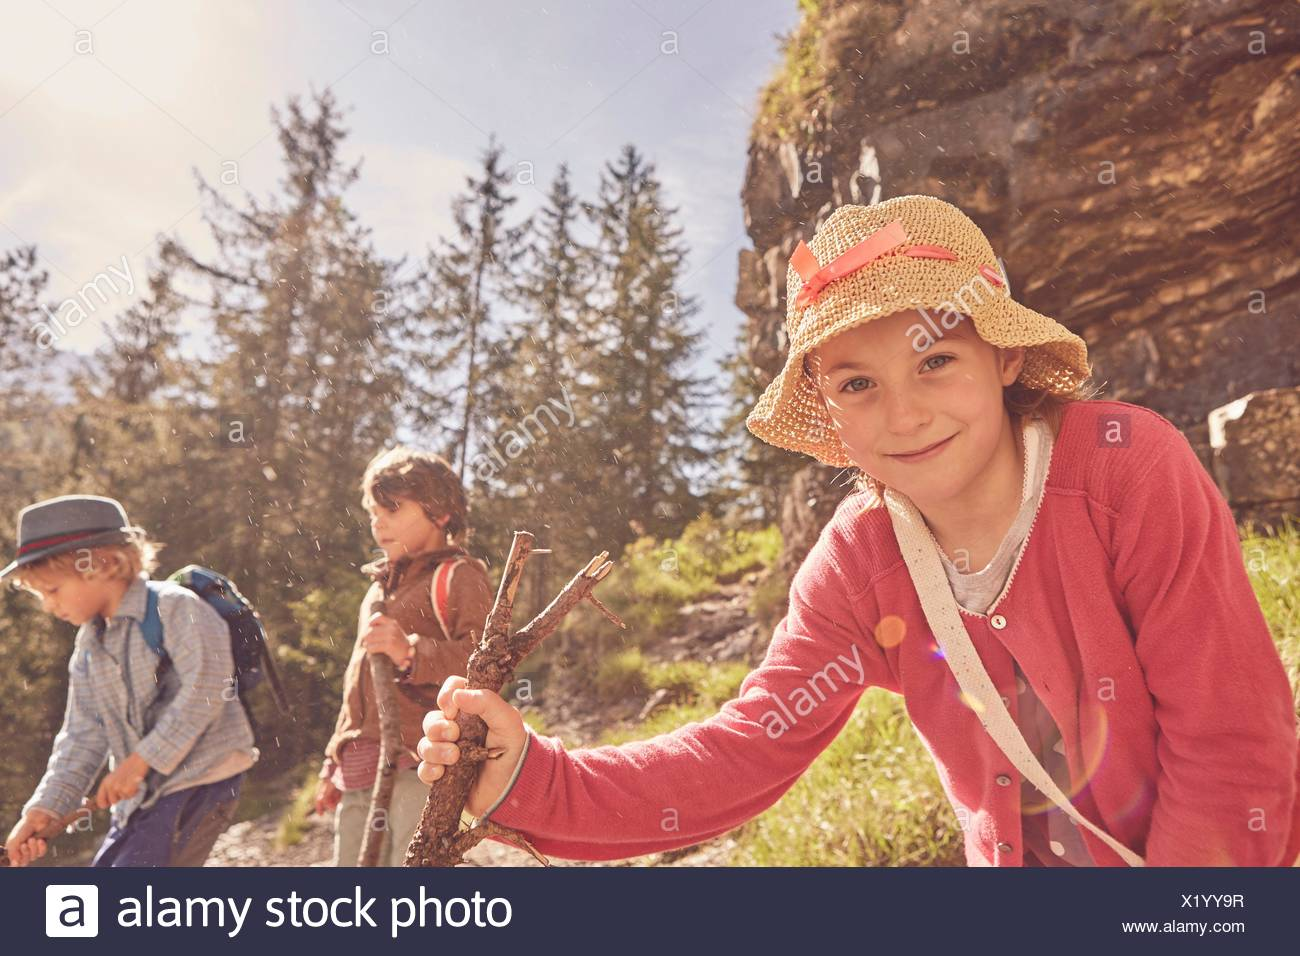 Trois enfants explorer forest Photo Stock